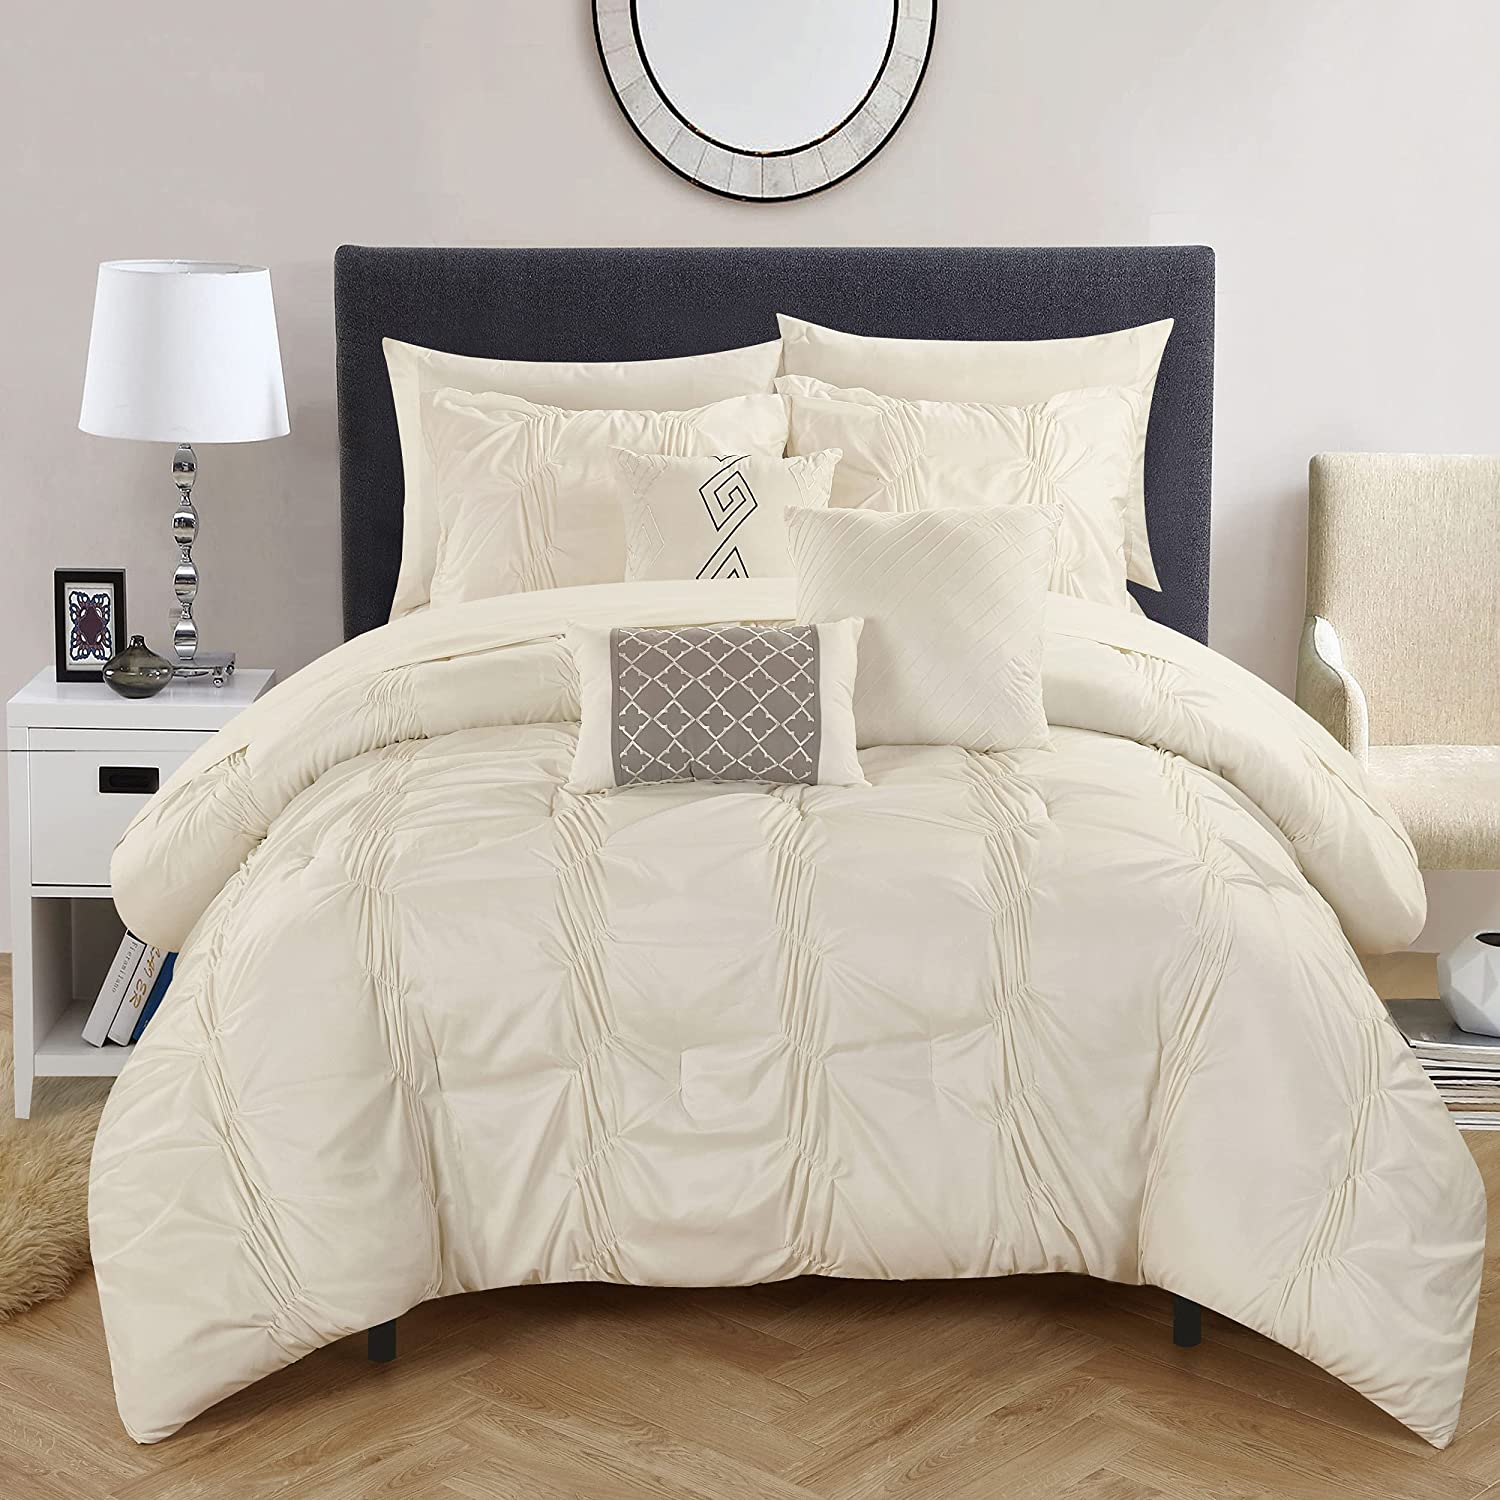 Chic Home CS2556 10 Piece Tori Pinch, Ruffled and Pleated Complete King Bed in a Bag Comforter Beige Sheets Set and Deocrative Pillows Included